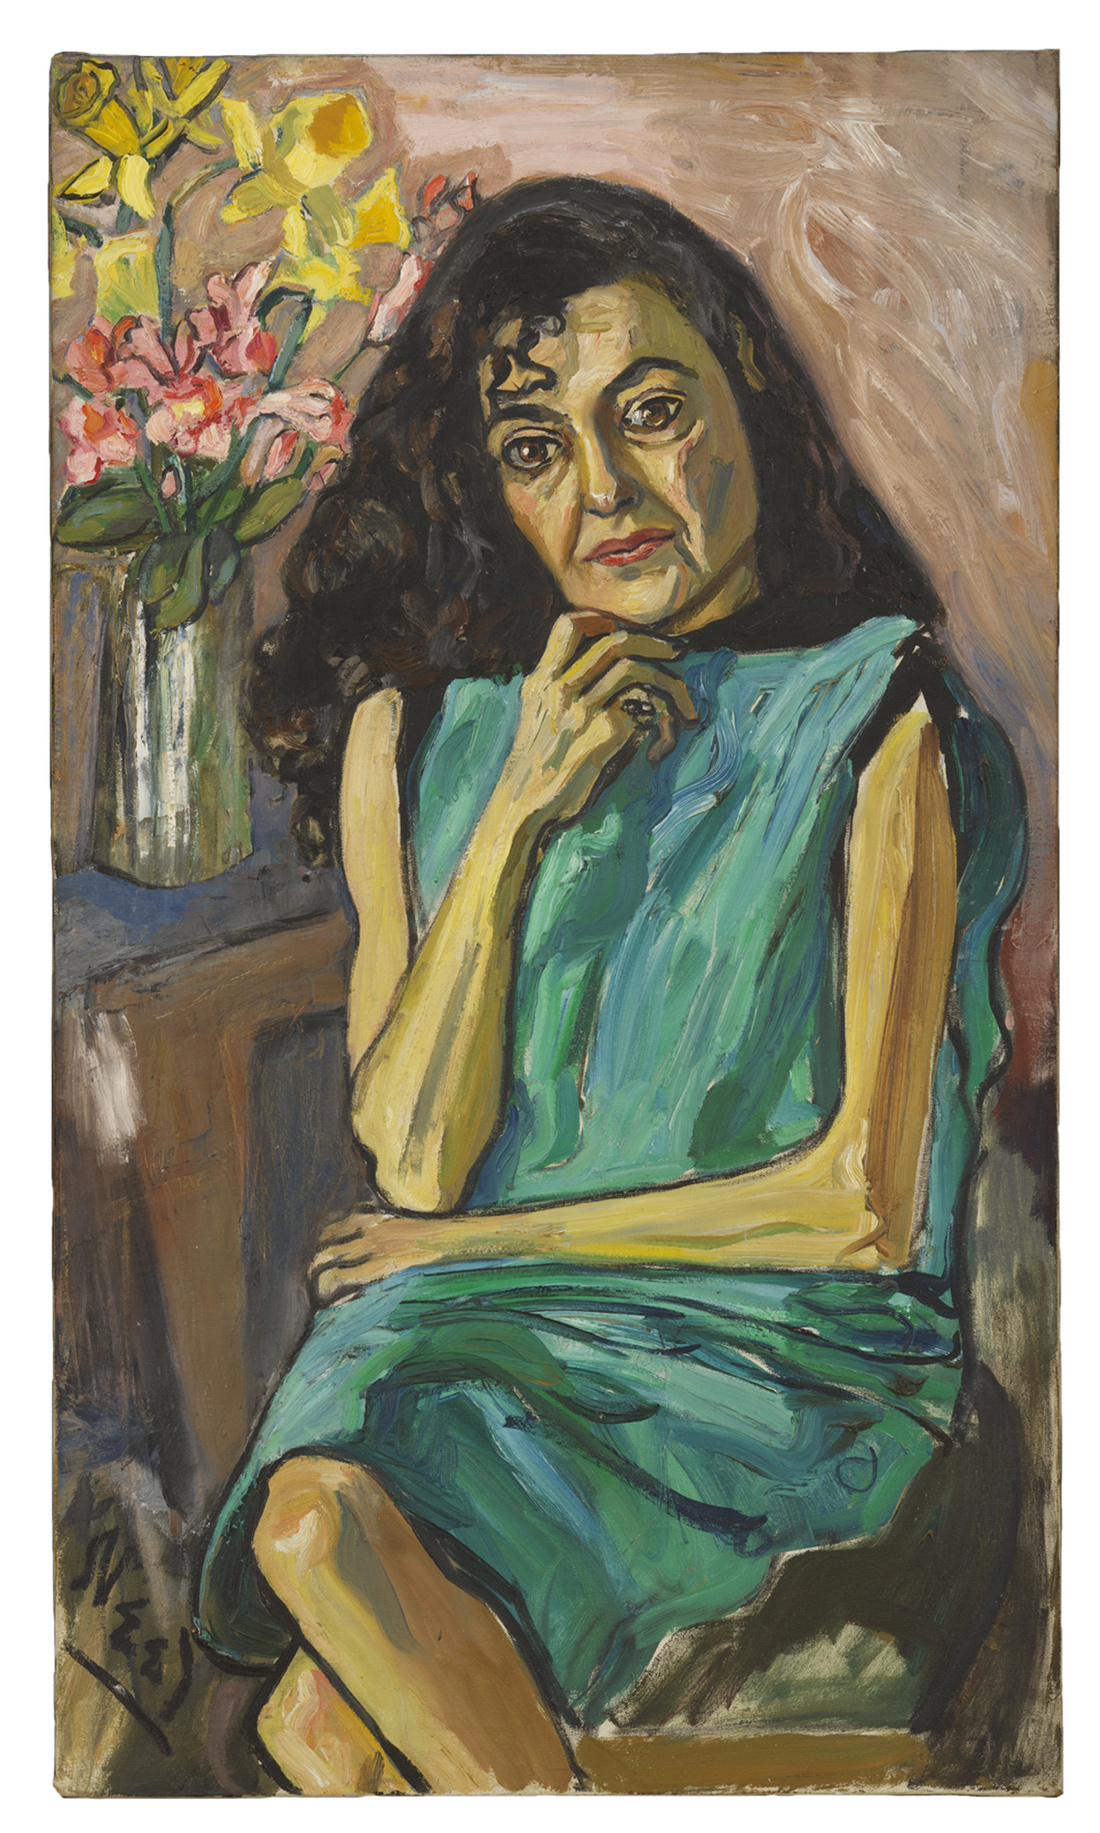 Alice Neel, Spanish Woman, c. 1950. Private Collection, courtesy Robert Miller, New York. © The Estate of Alice Neel. Courtesy David Zwirner, New York/London and Victoria Miro, London.